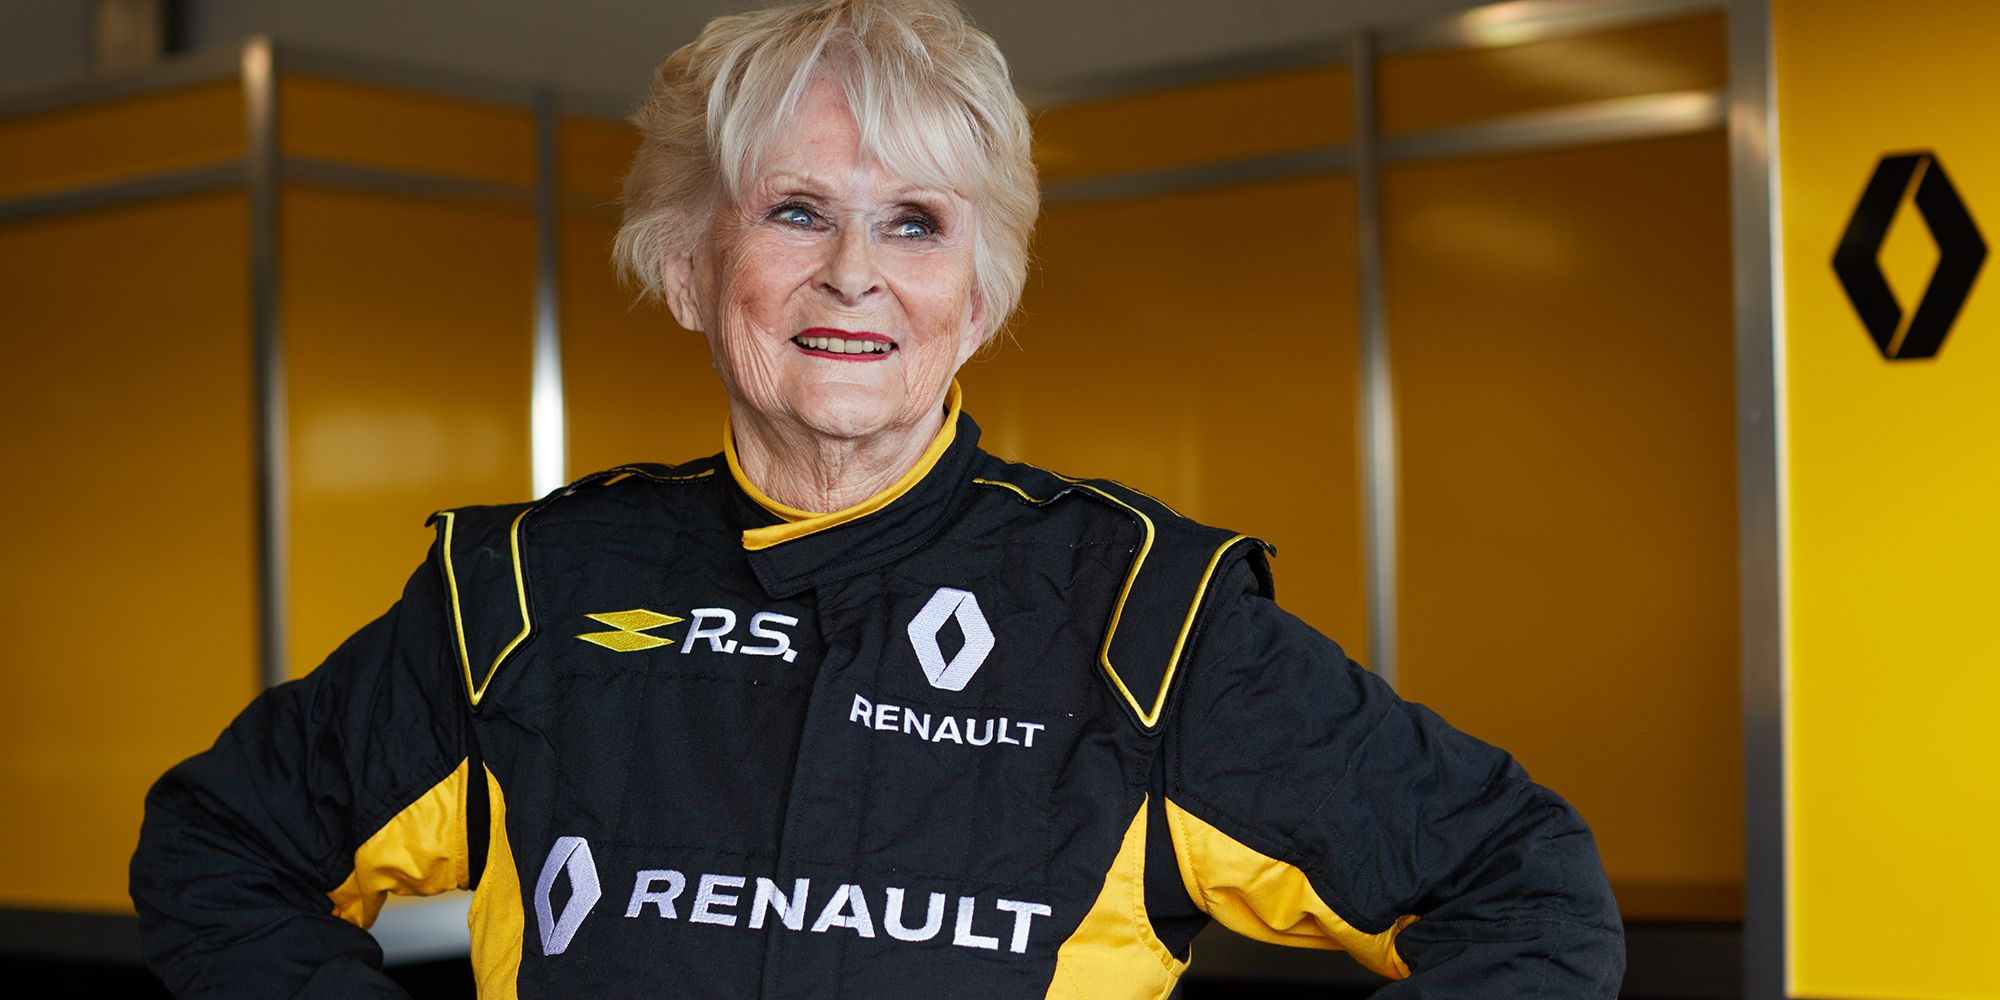 renault-sport-rosemary-smith-f1-1-149995